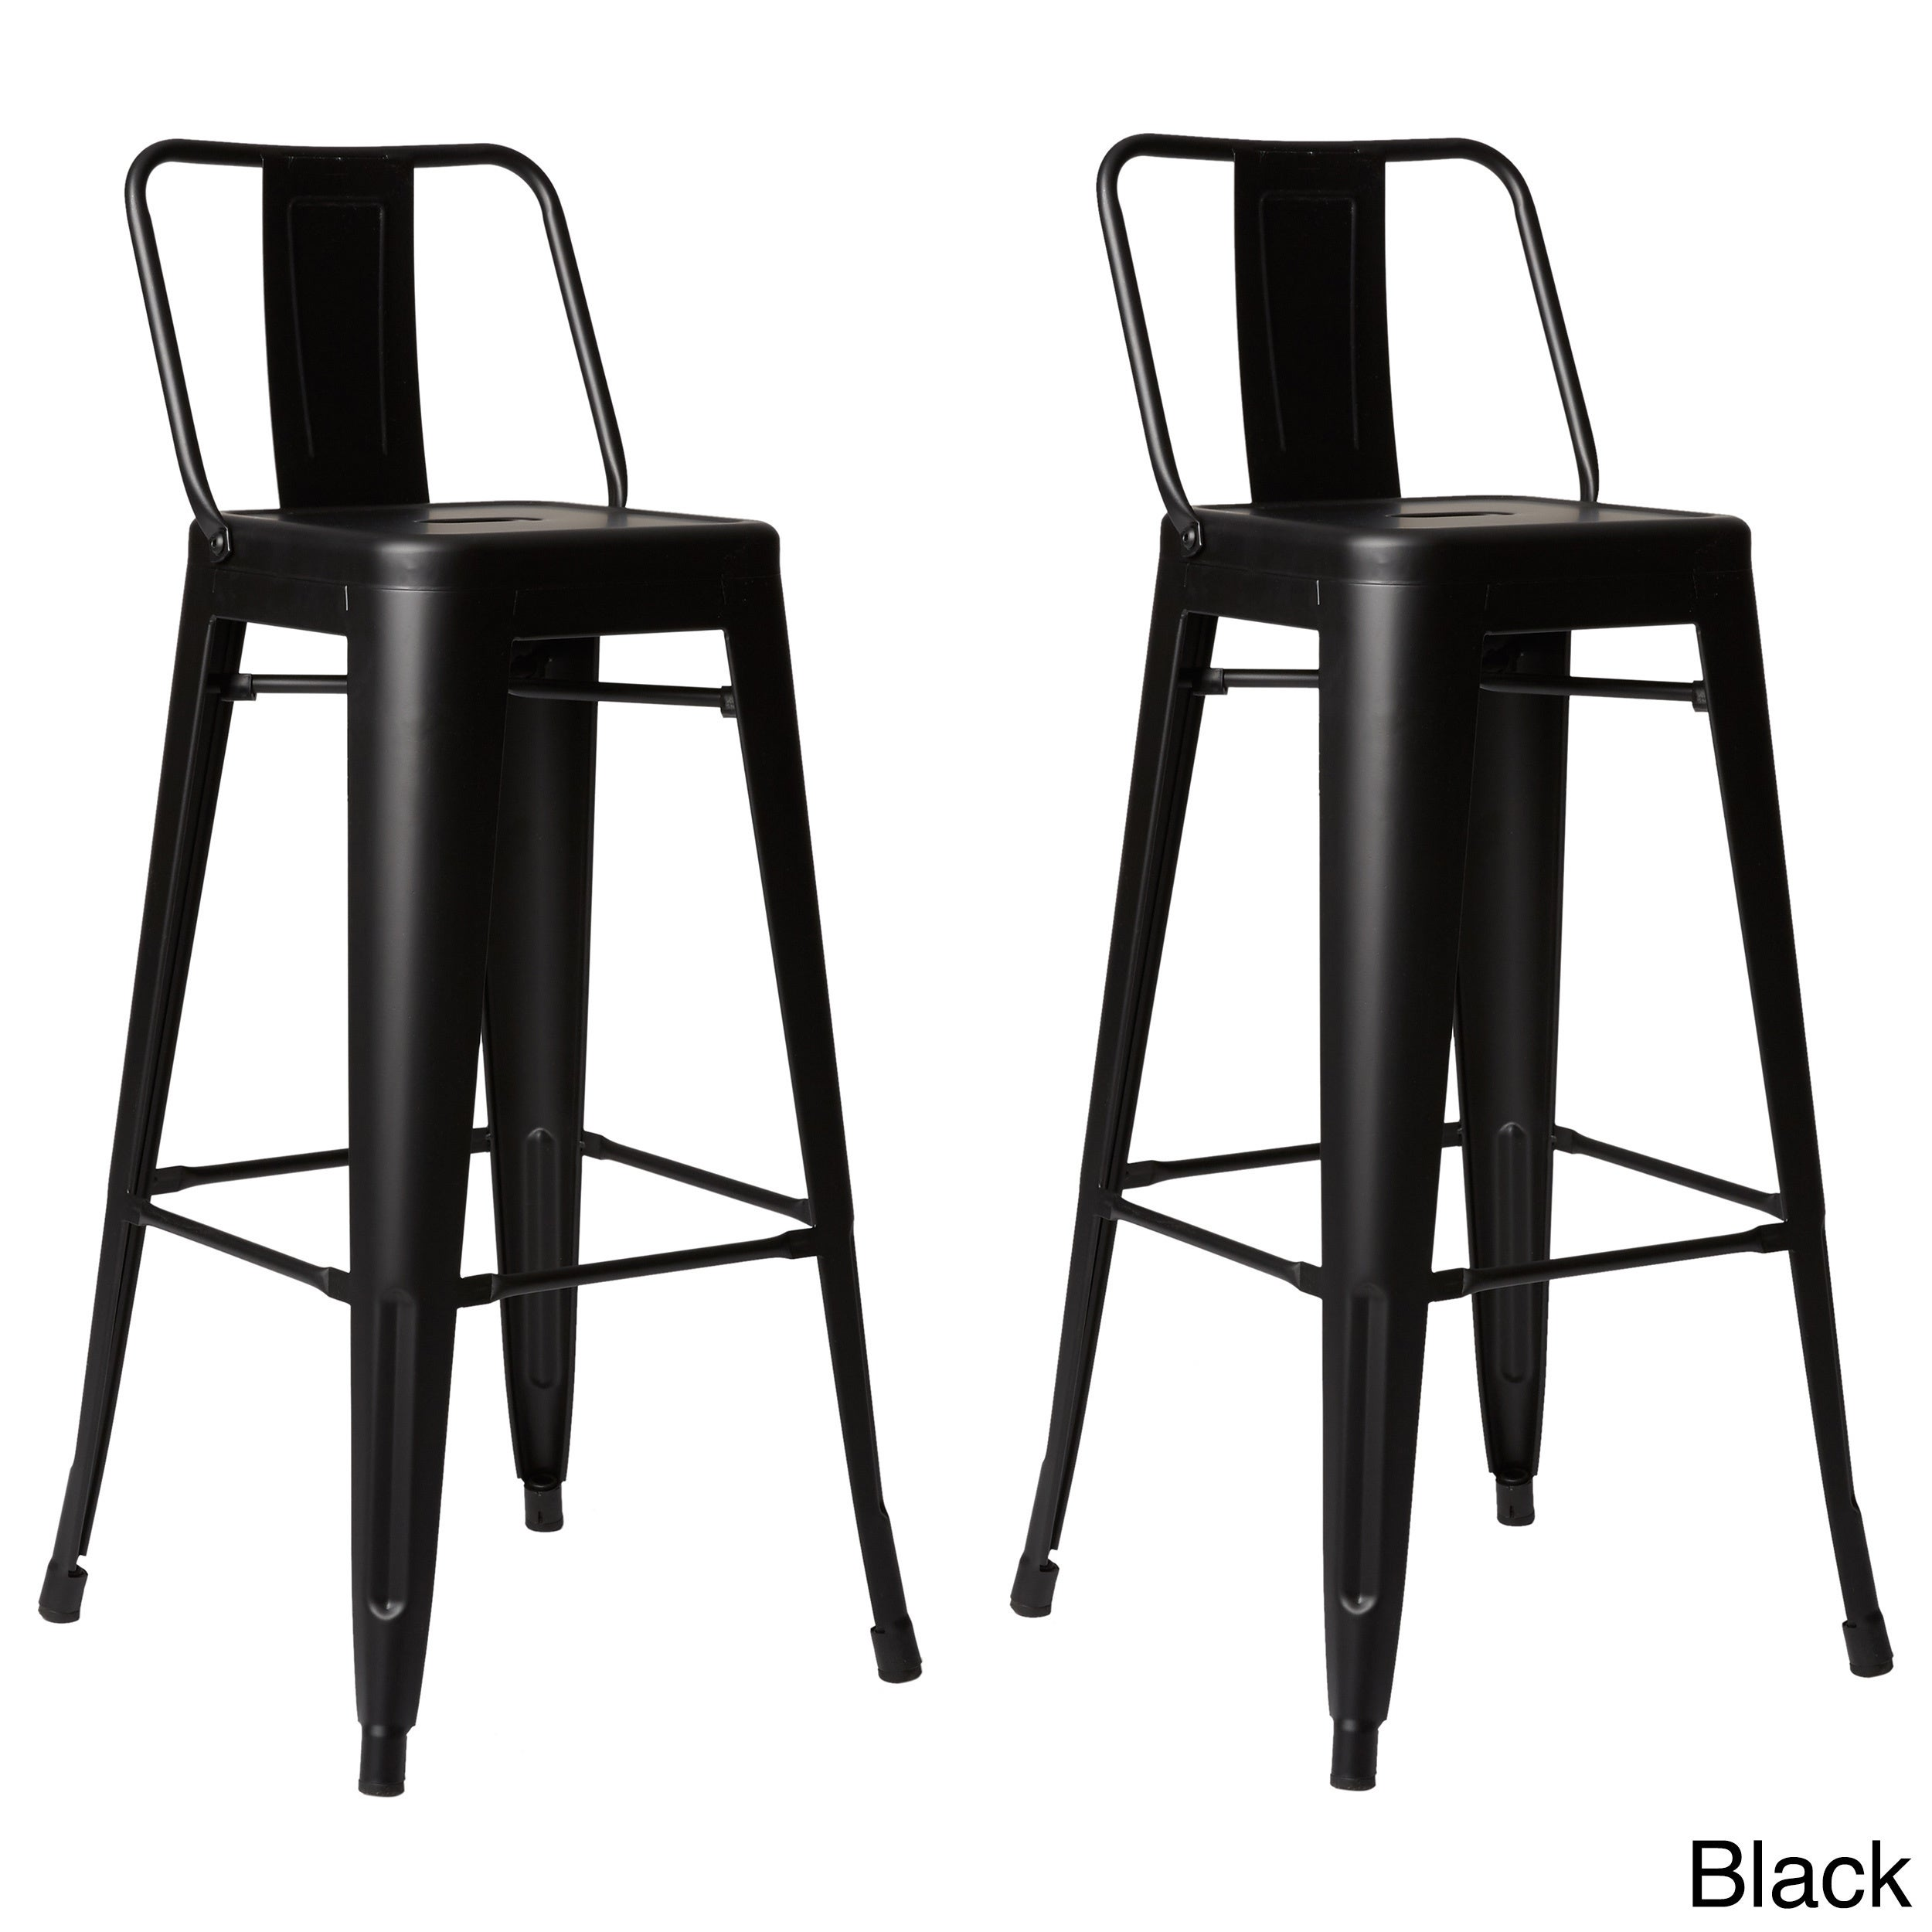 Excellent Carbon Loft Ruska Steel 30 Inch Bar Stool Set Of 2 Pabps2019 Chair Design Images Pabps2019Com